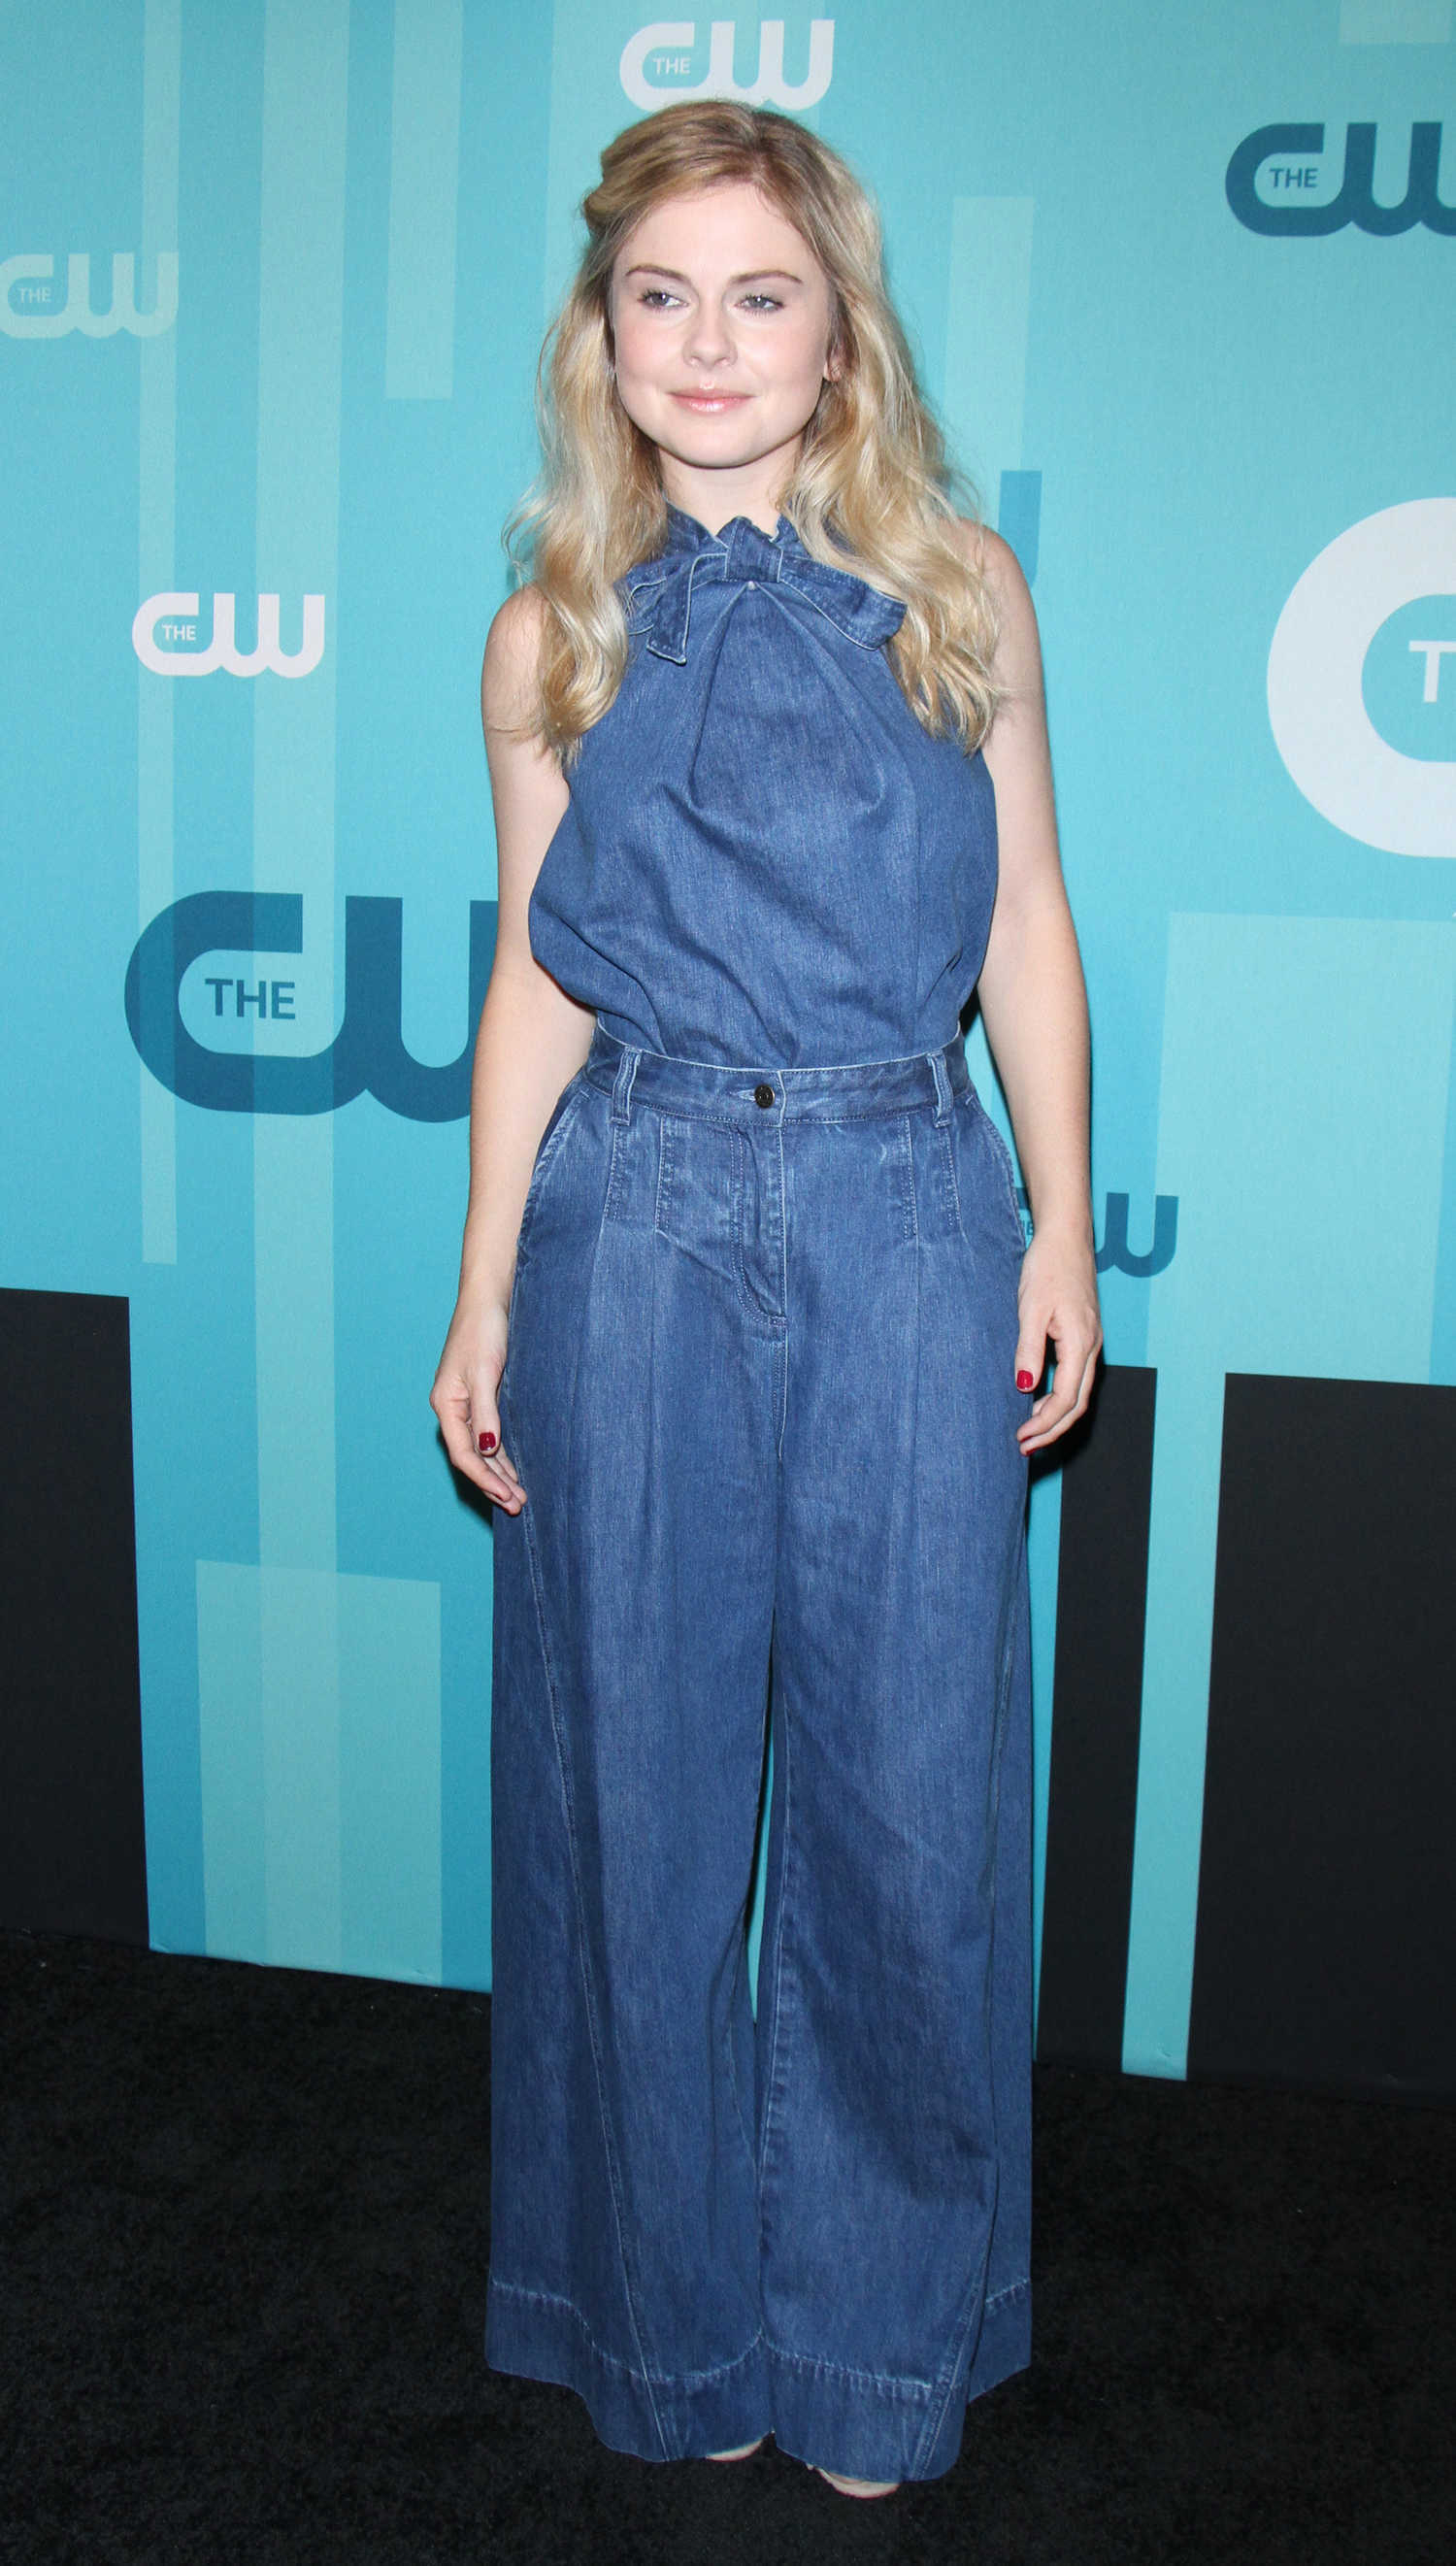 ROSE MCIVER at CW Upfronts Presentation in New York